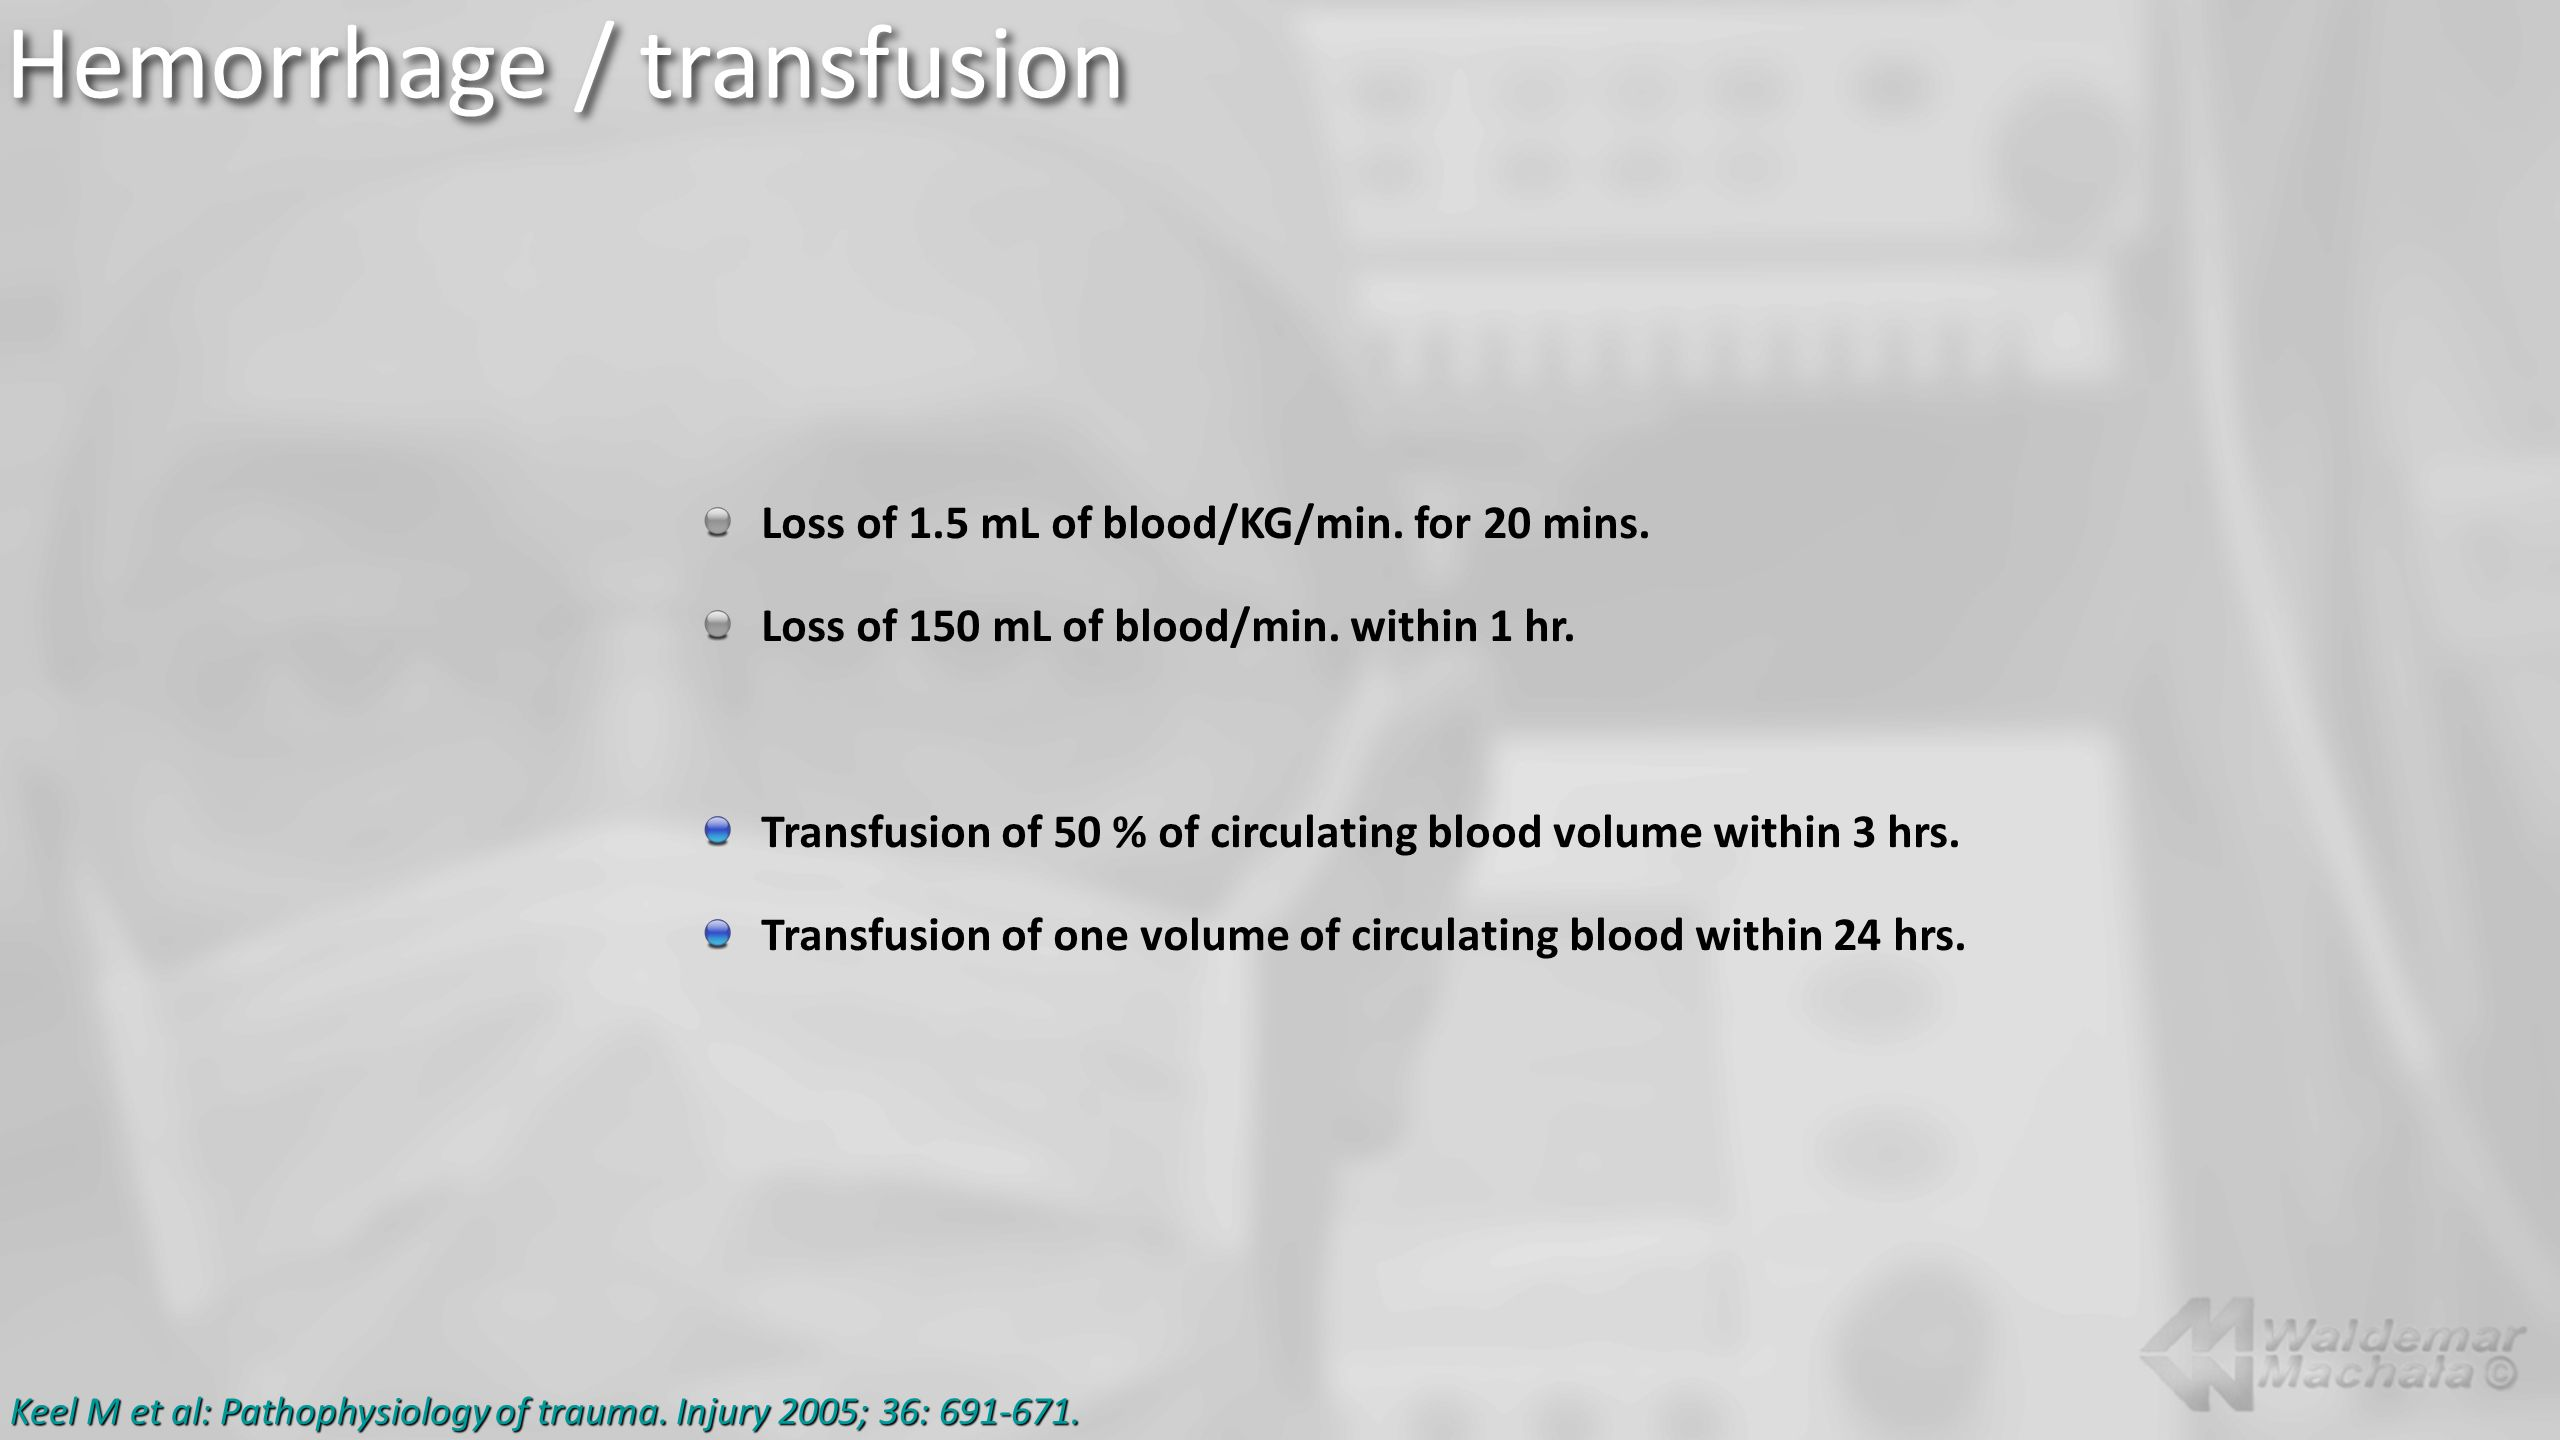 Loss of 1.5 mL of blood/KG/min. for 20 mins. Loss of 150 mL of blood/min.